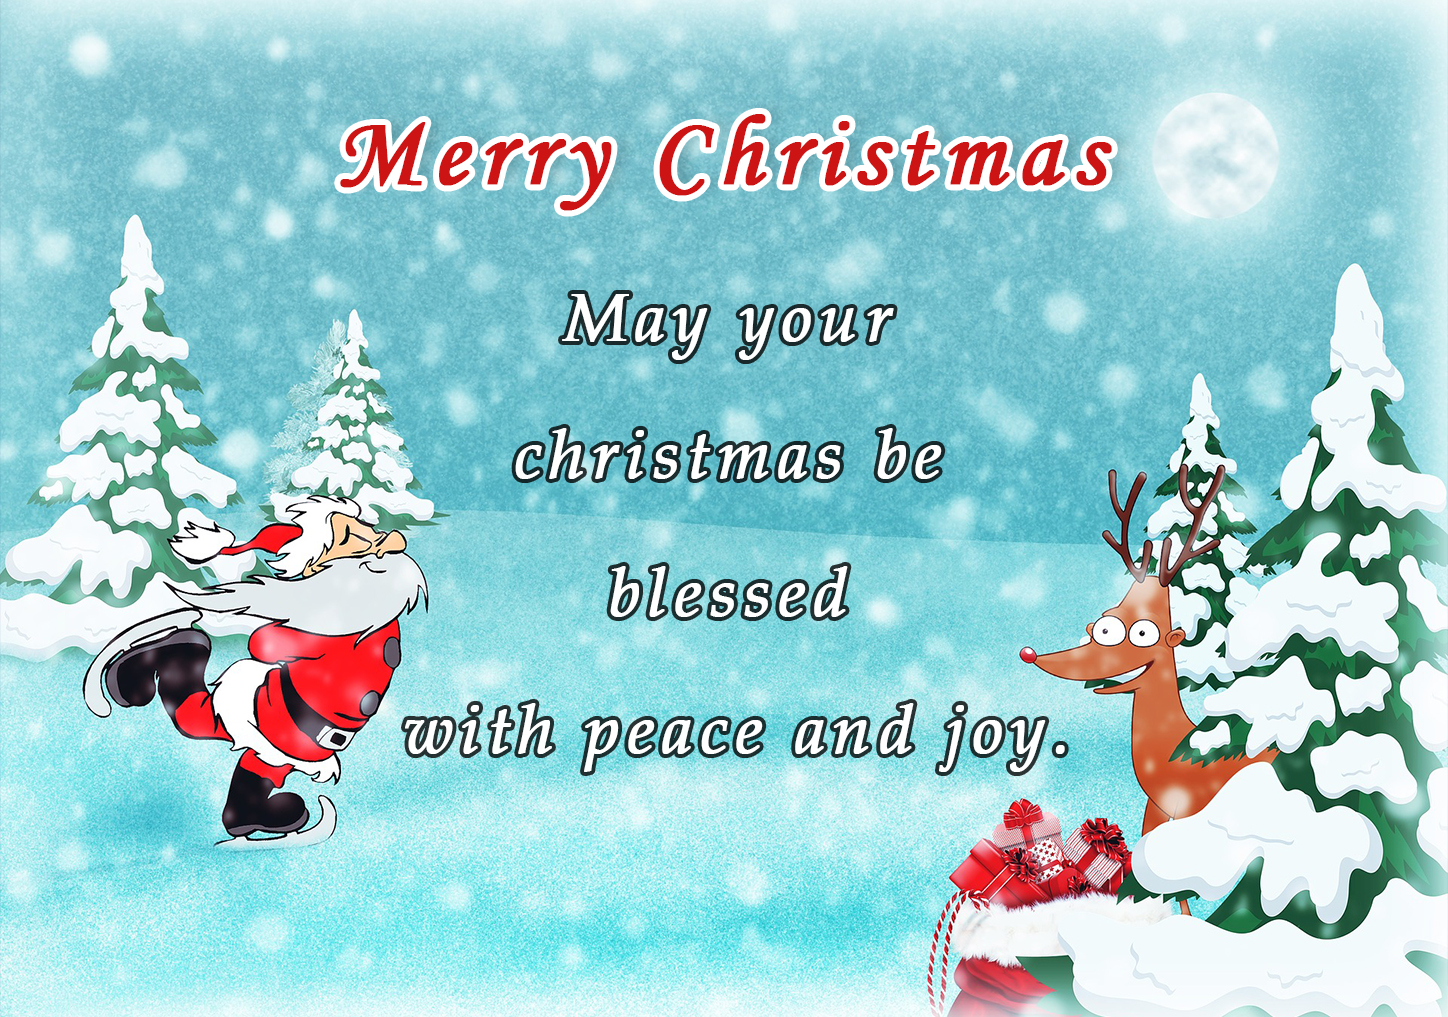 merry christmas images christmas images 2018 wishes